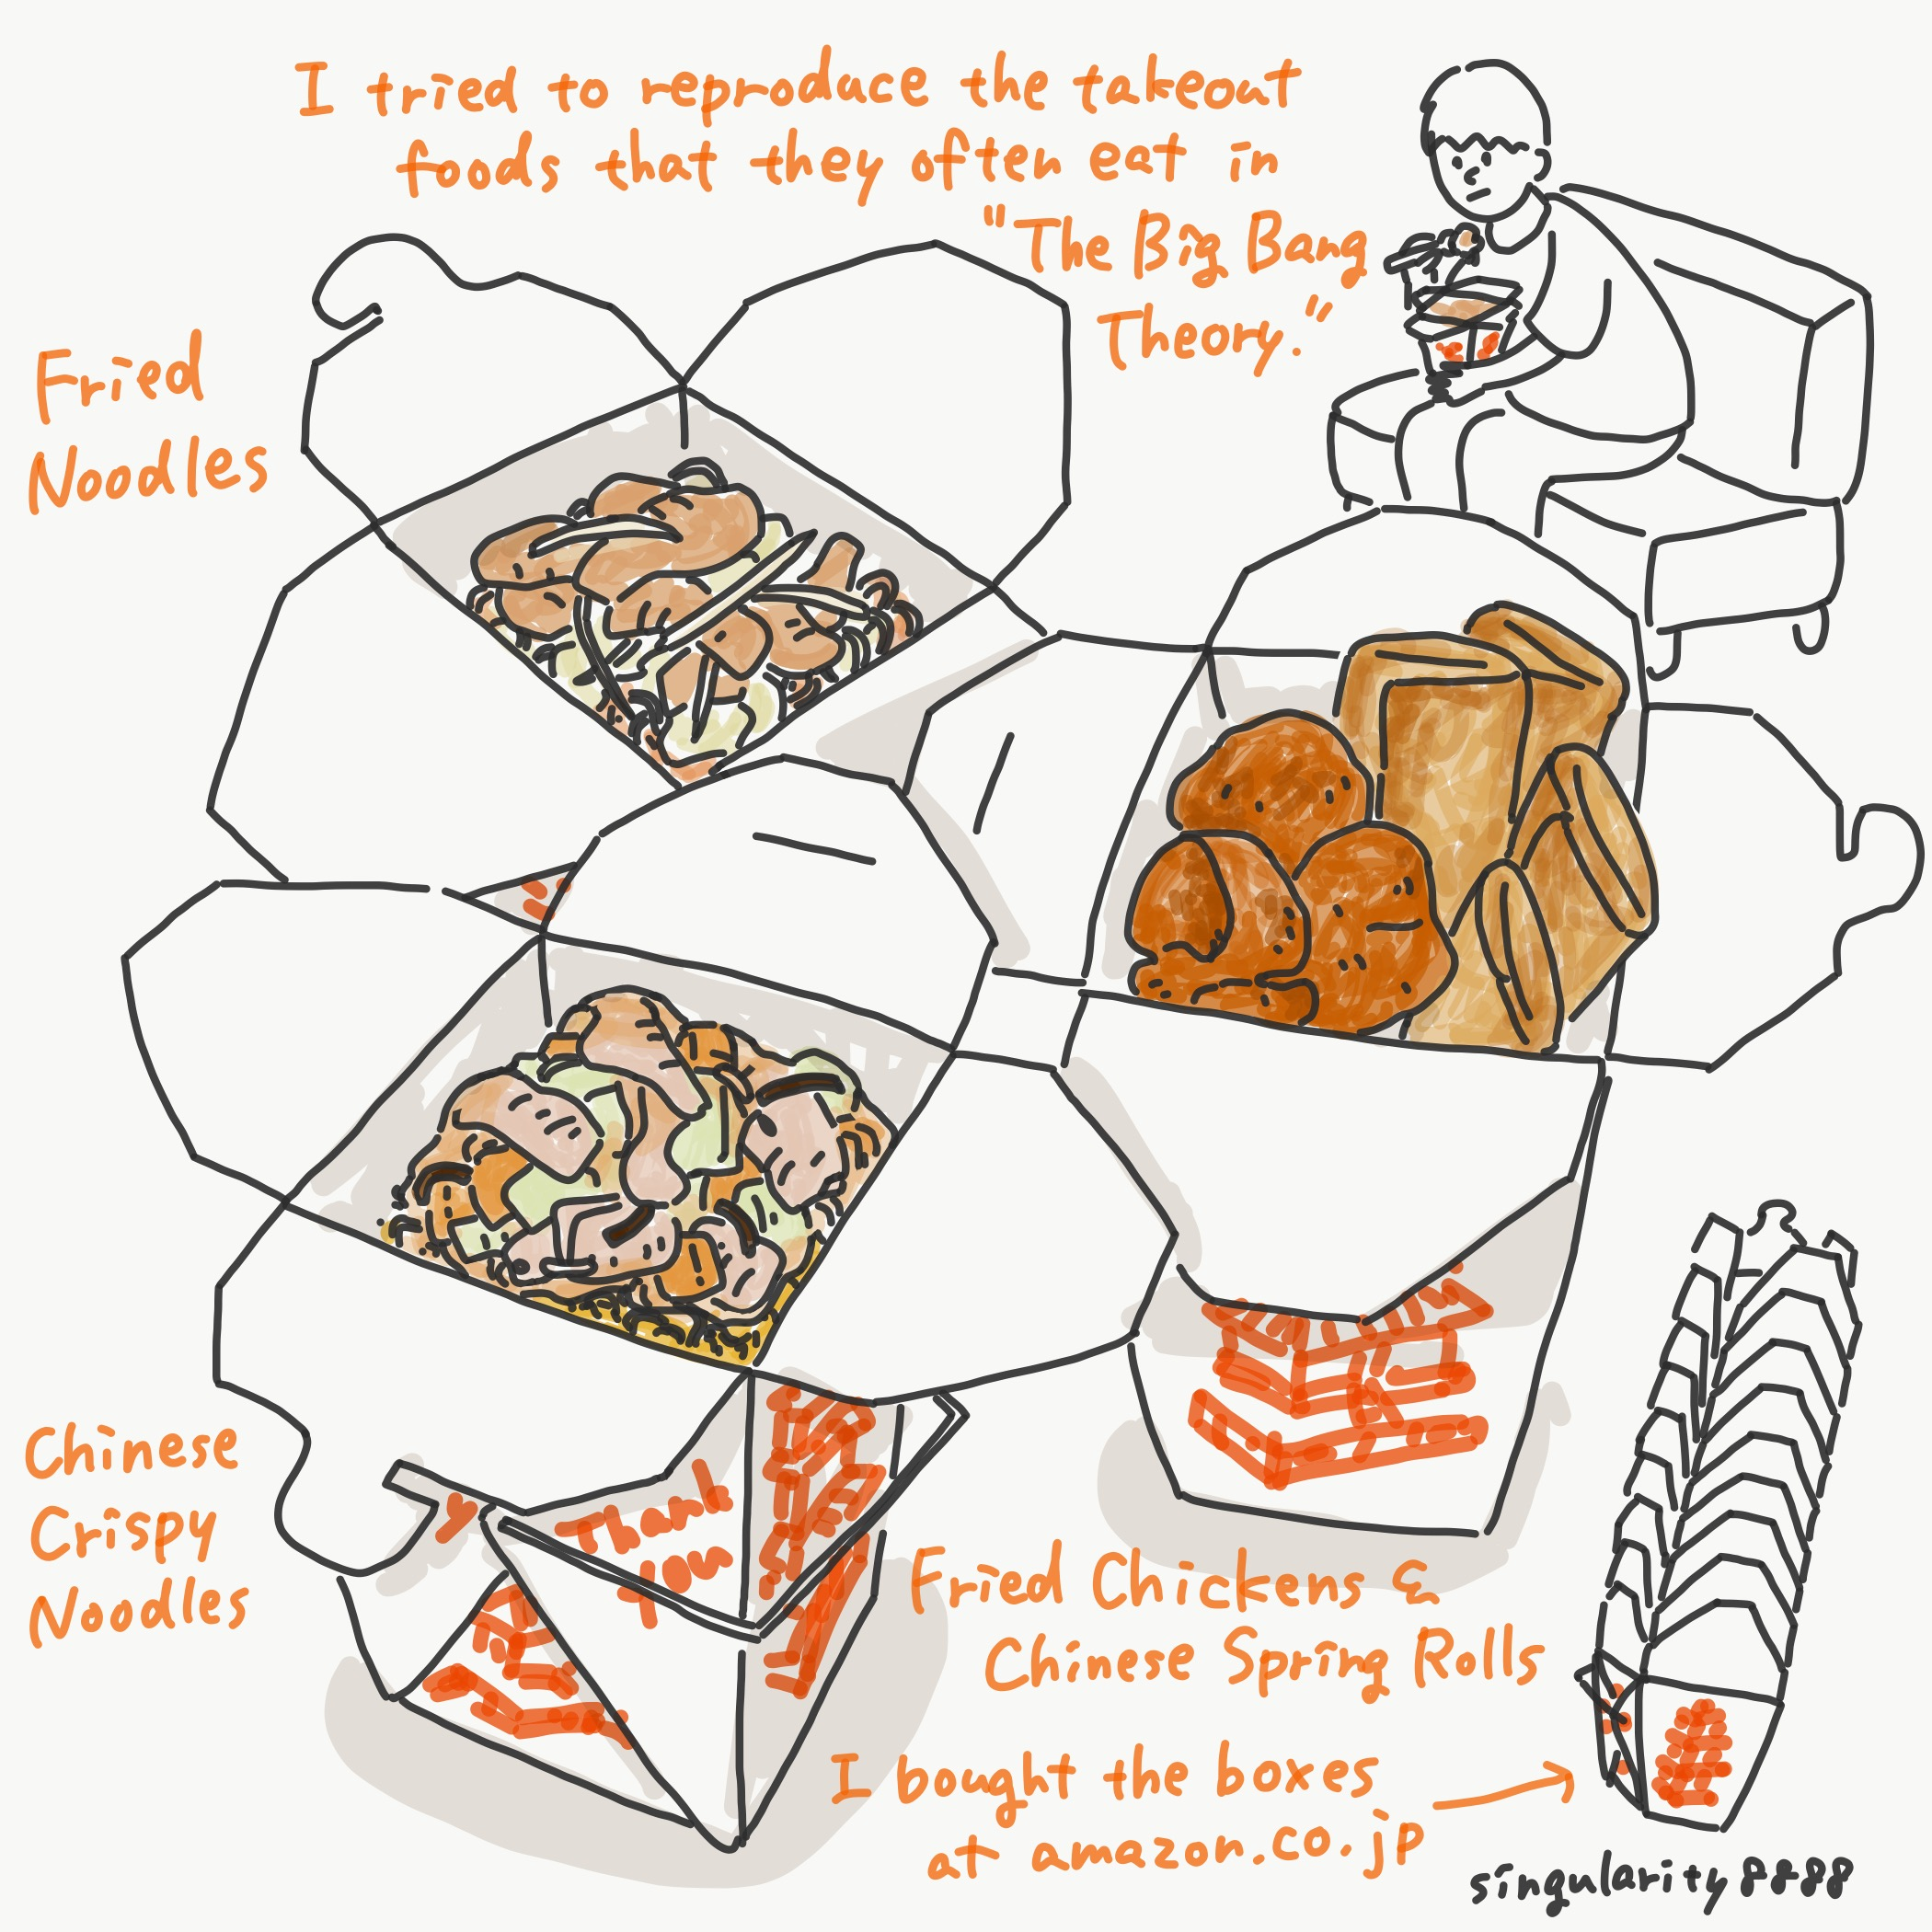 Reproduction of takeout foods Image